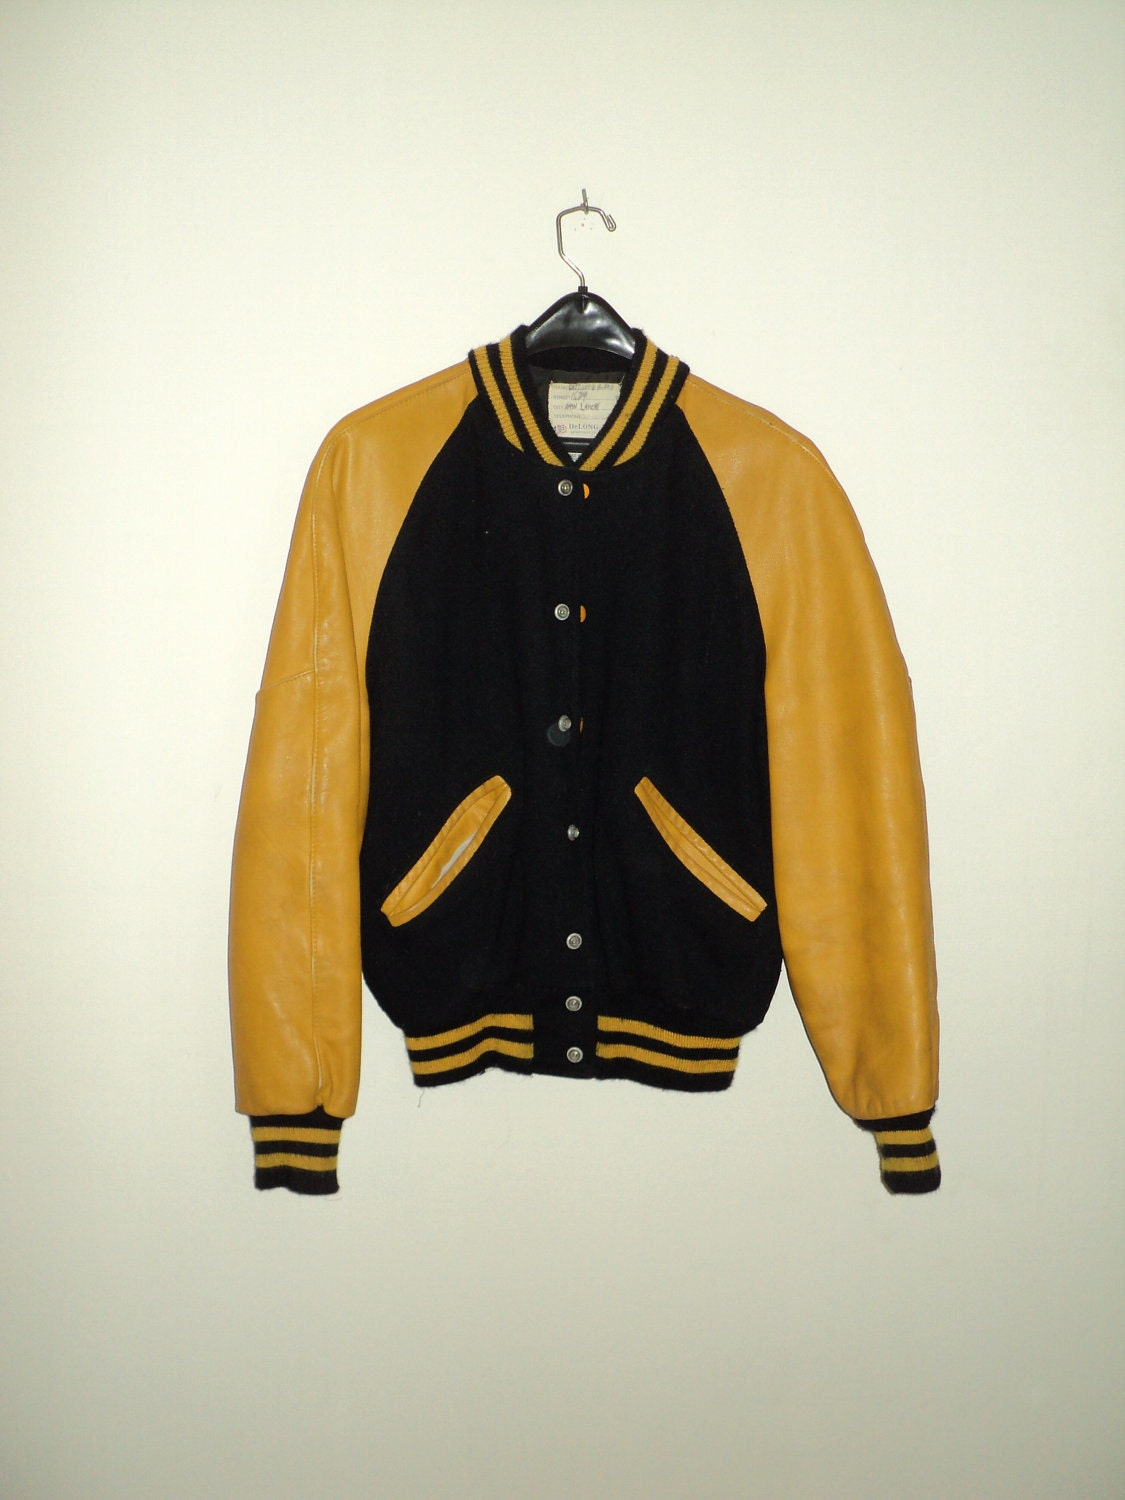 VINTAGE BASEBALL JACKET of Blue and Gold by RRGS on Etsy